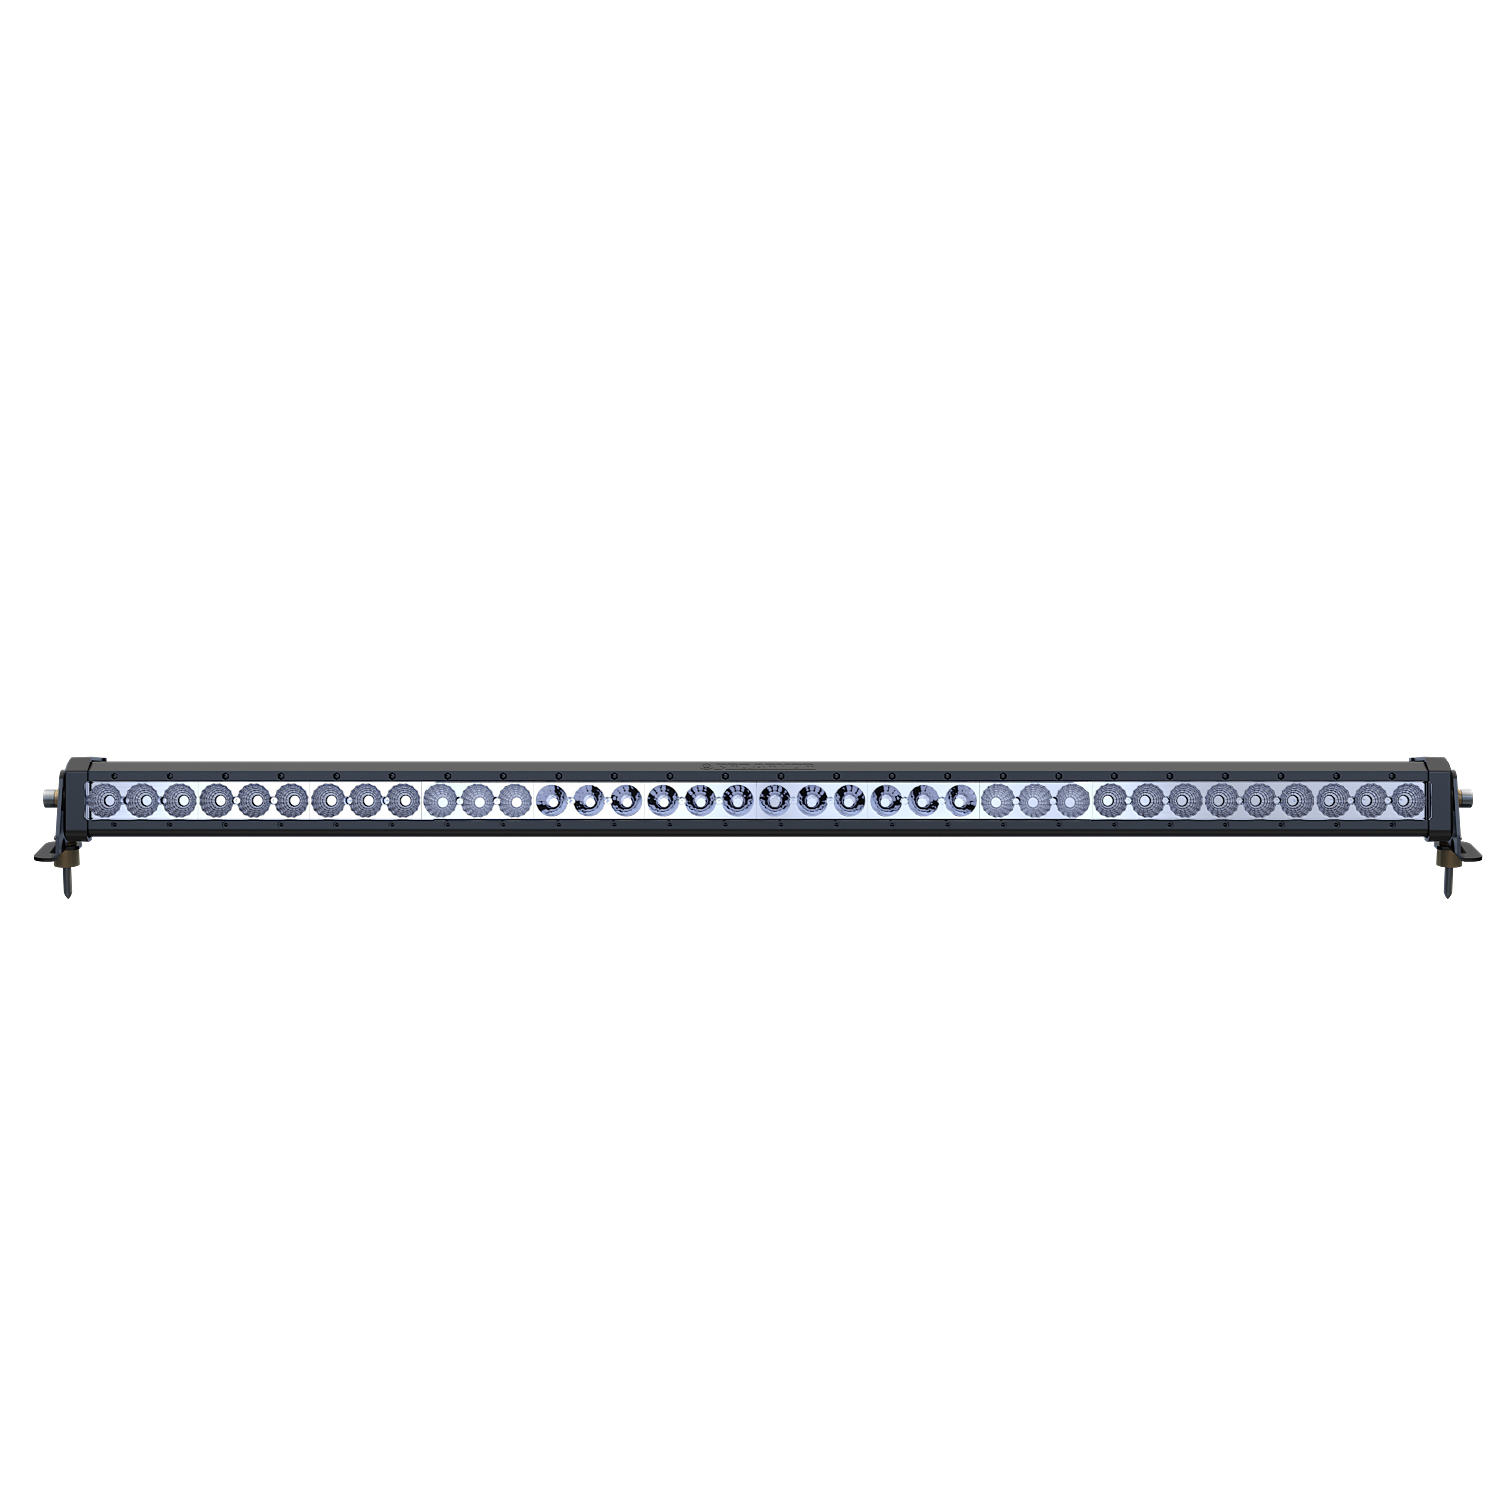 "Pro Armor® 40"" Single Row LED Light Bar"